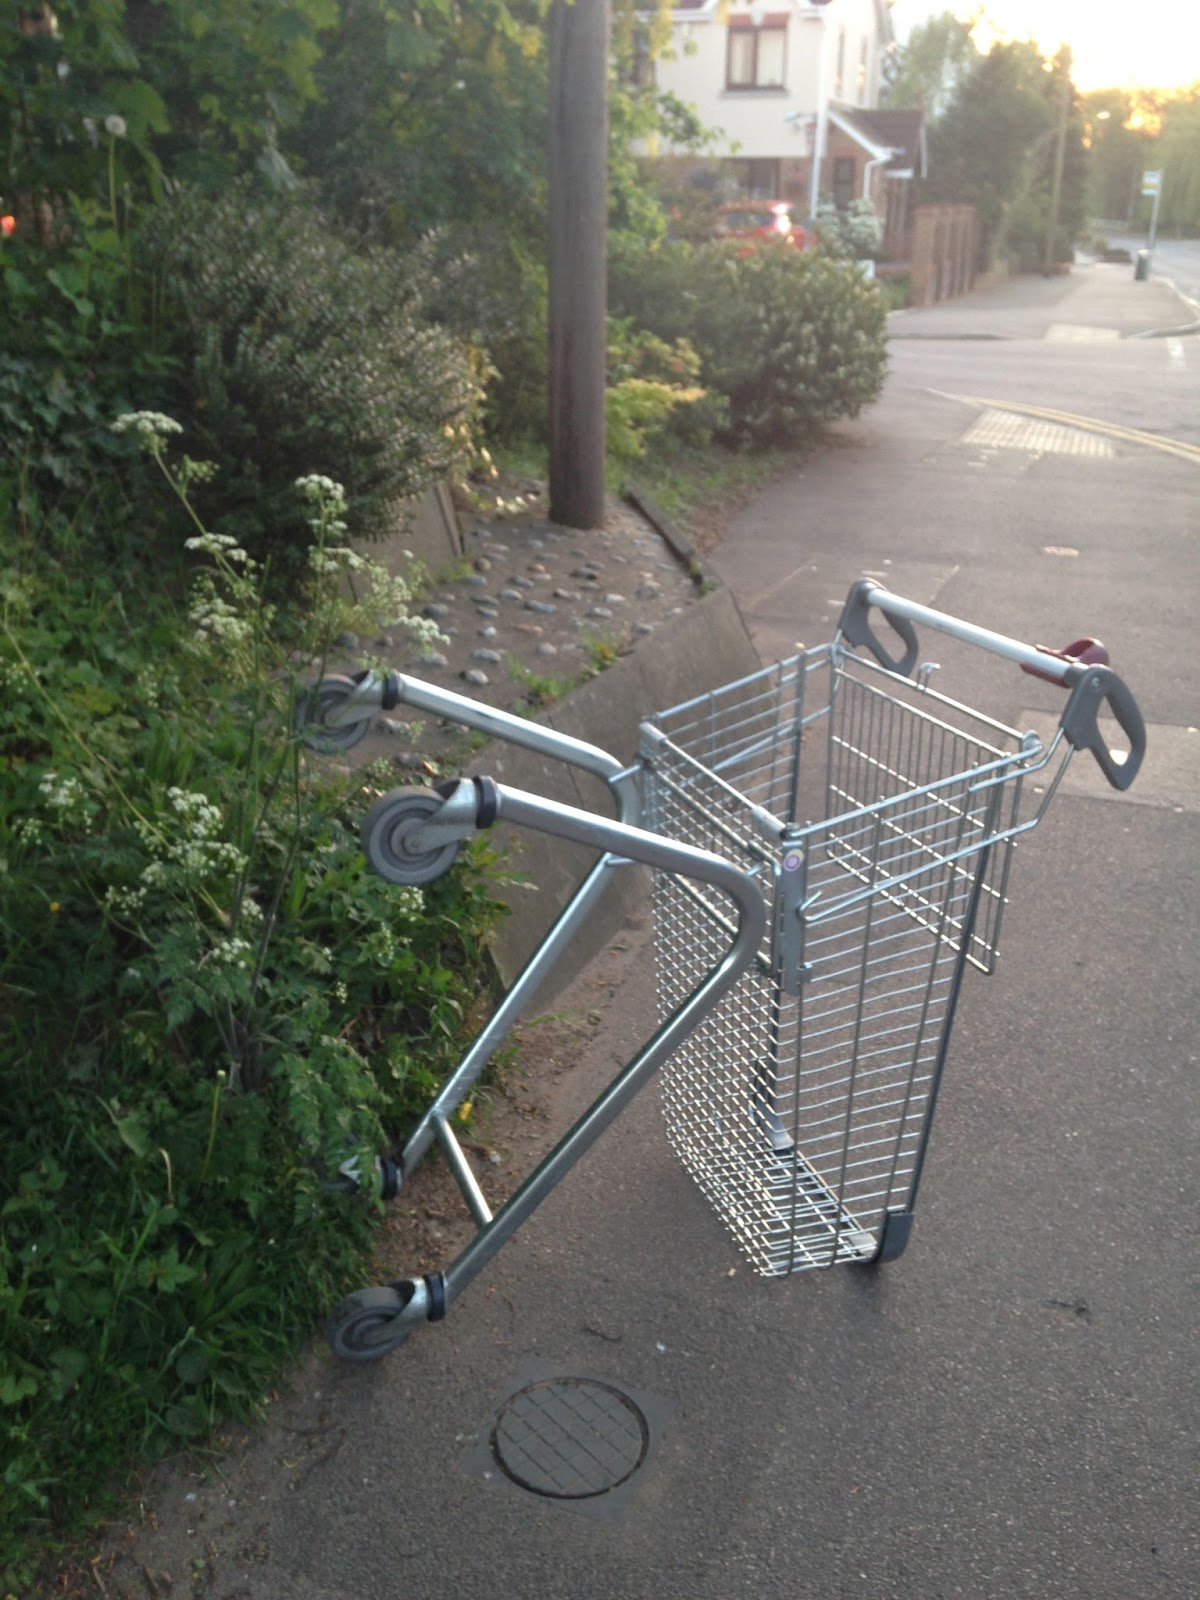 Upturned trolley on a pavement